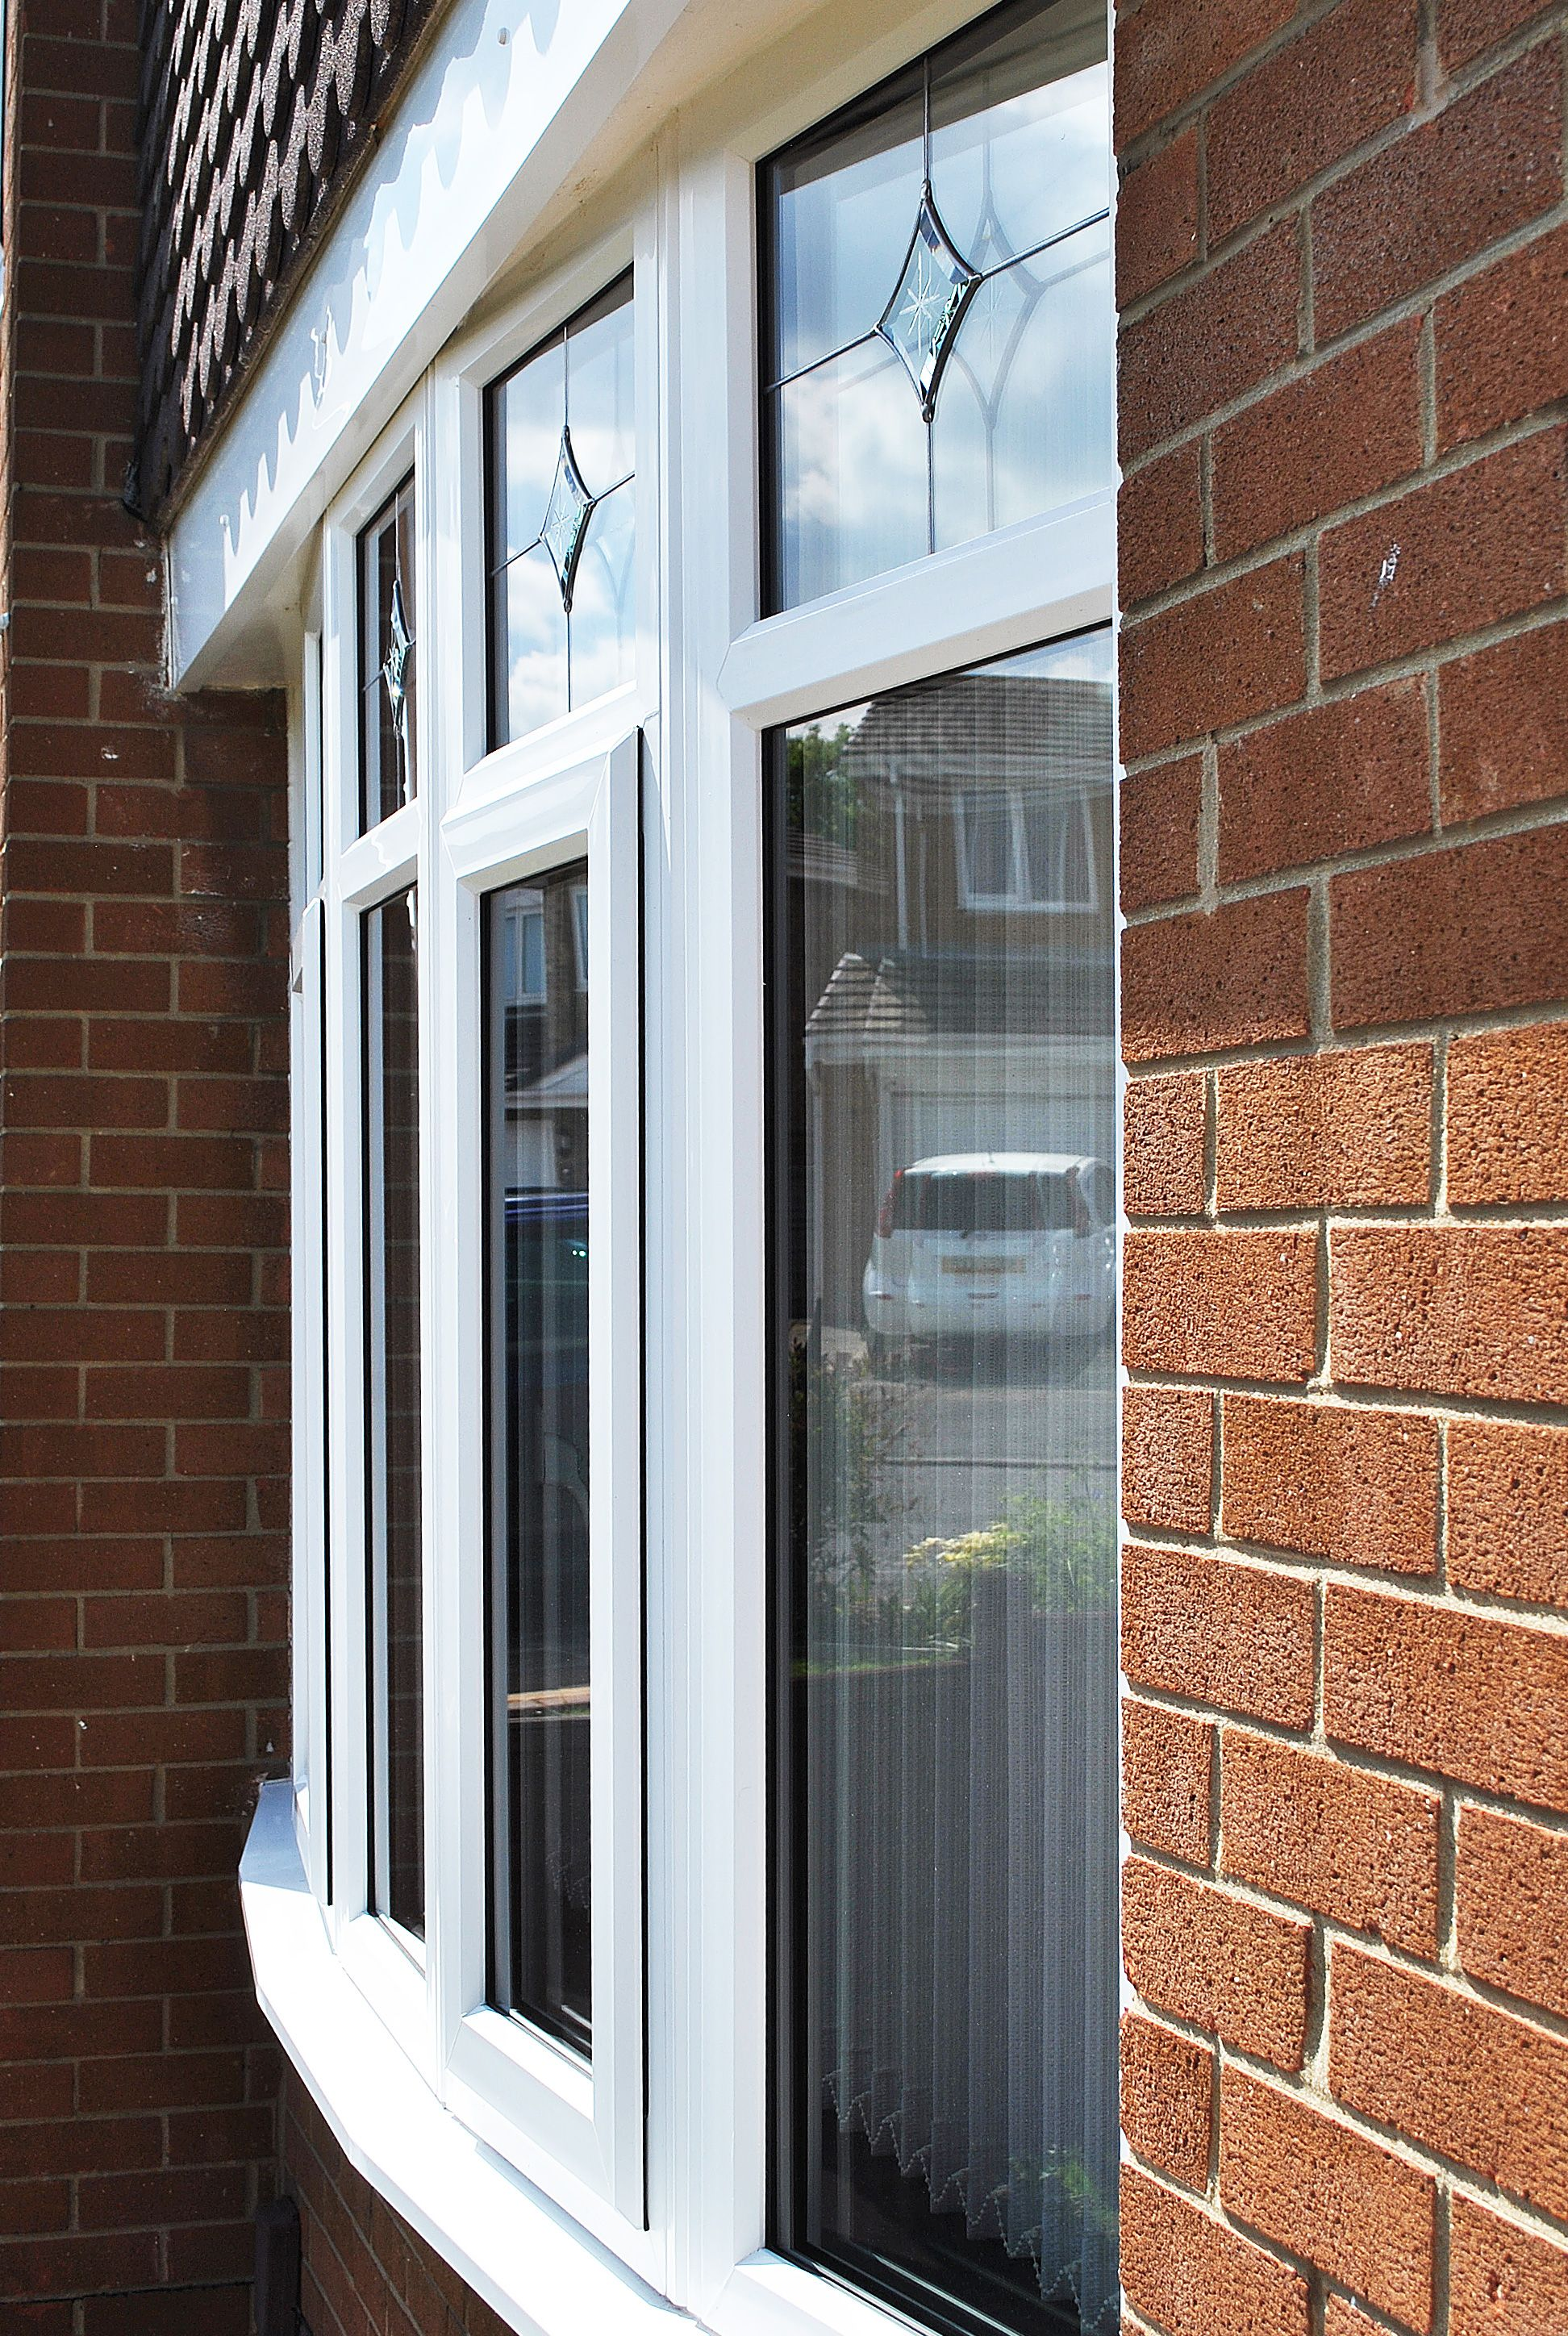 Beautiful UPVC Rehau Lincoln Door And Windows With Sparkle Glass Design In  Side Panels And Top Openings With Glass Bevels Within The Windows Changing  ...